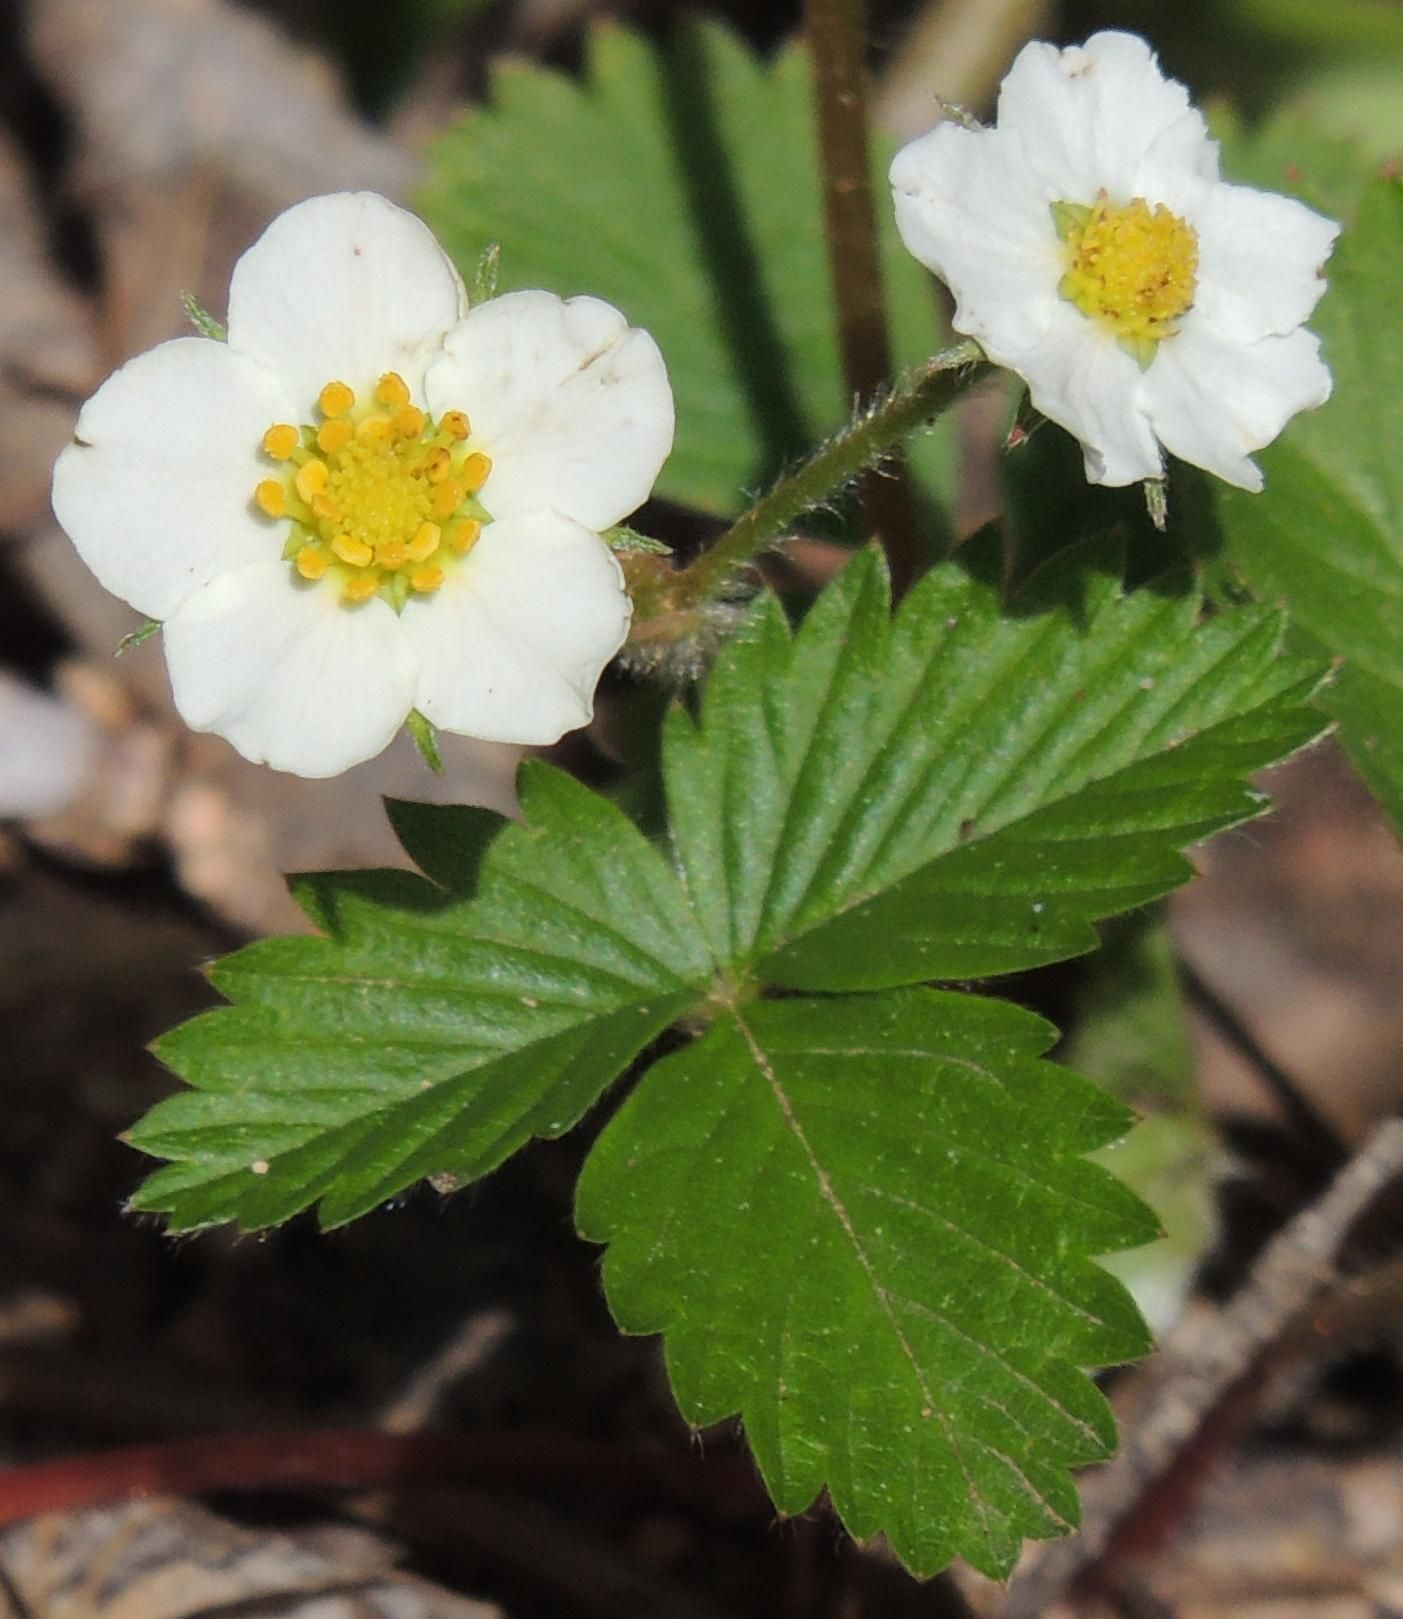 Wild Strawberry 10000ft CO [OC]